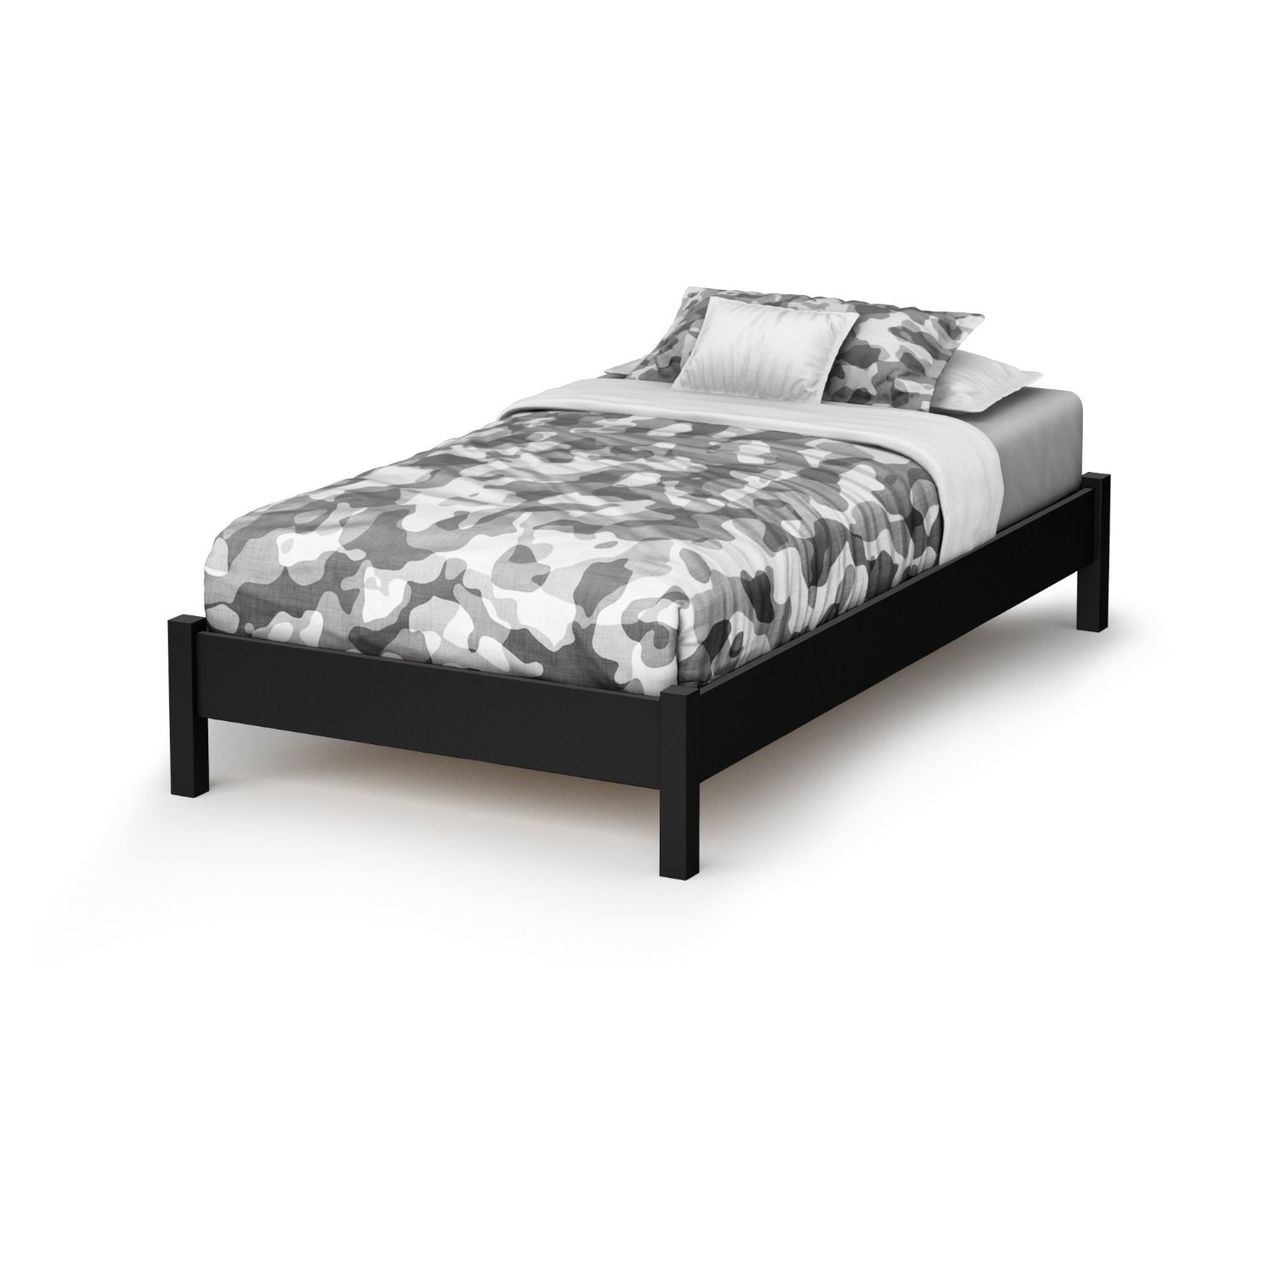 Twin Contemporary Platform Bed Frame In Black Wood Finish Twin Platform Bed Platform Bed Frame Platform Bed